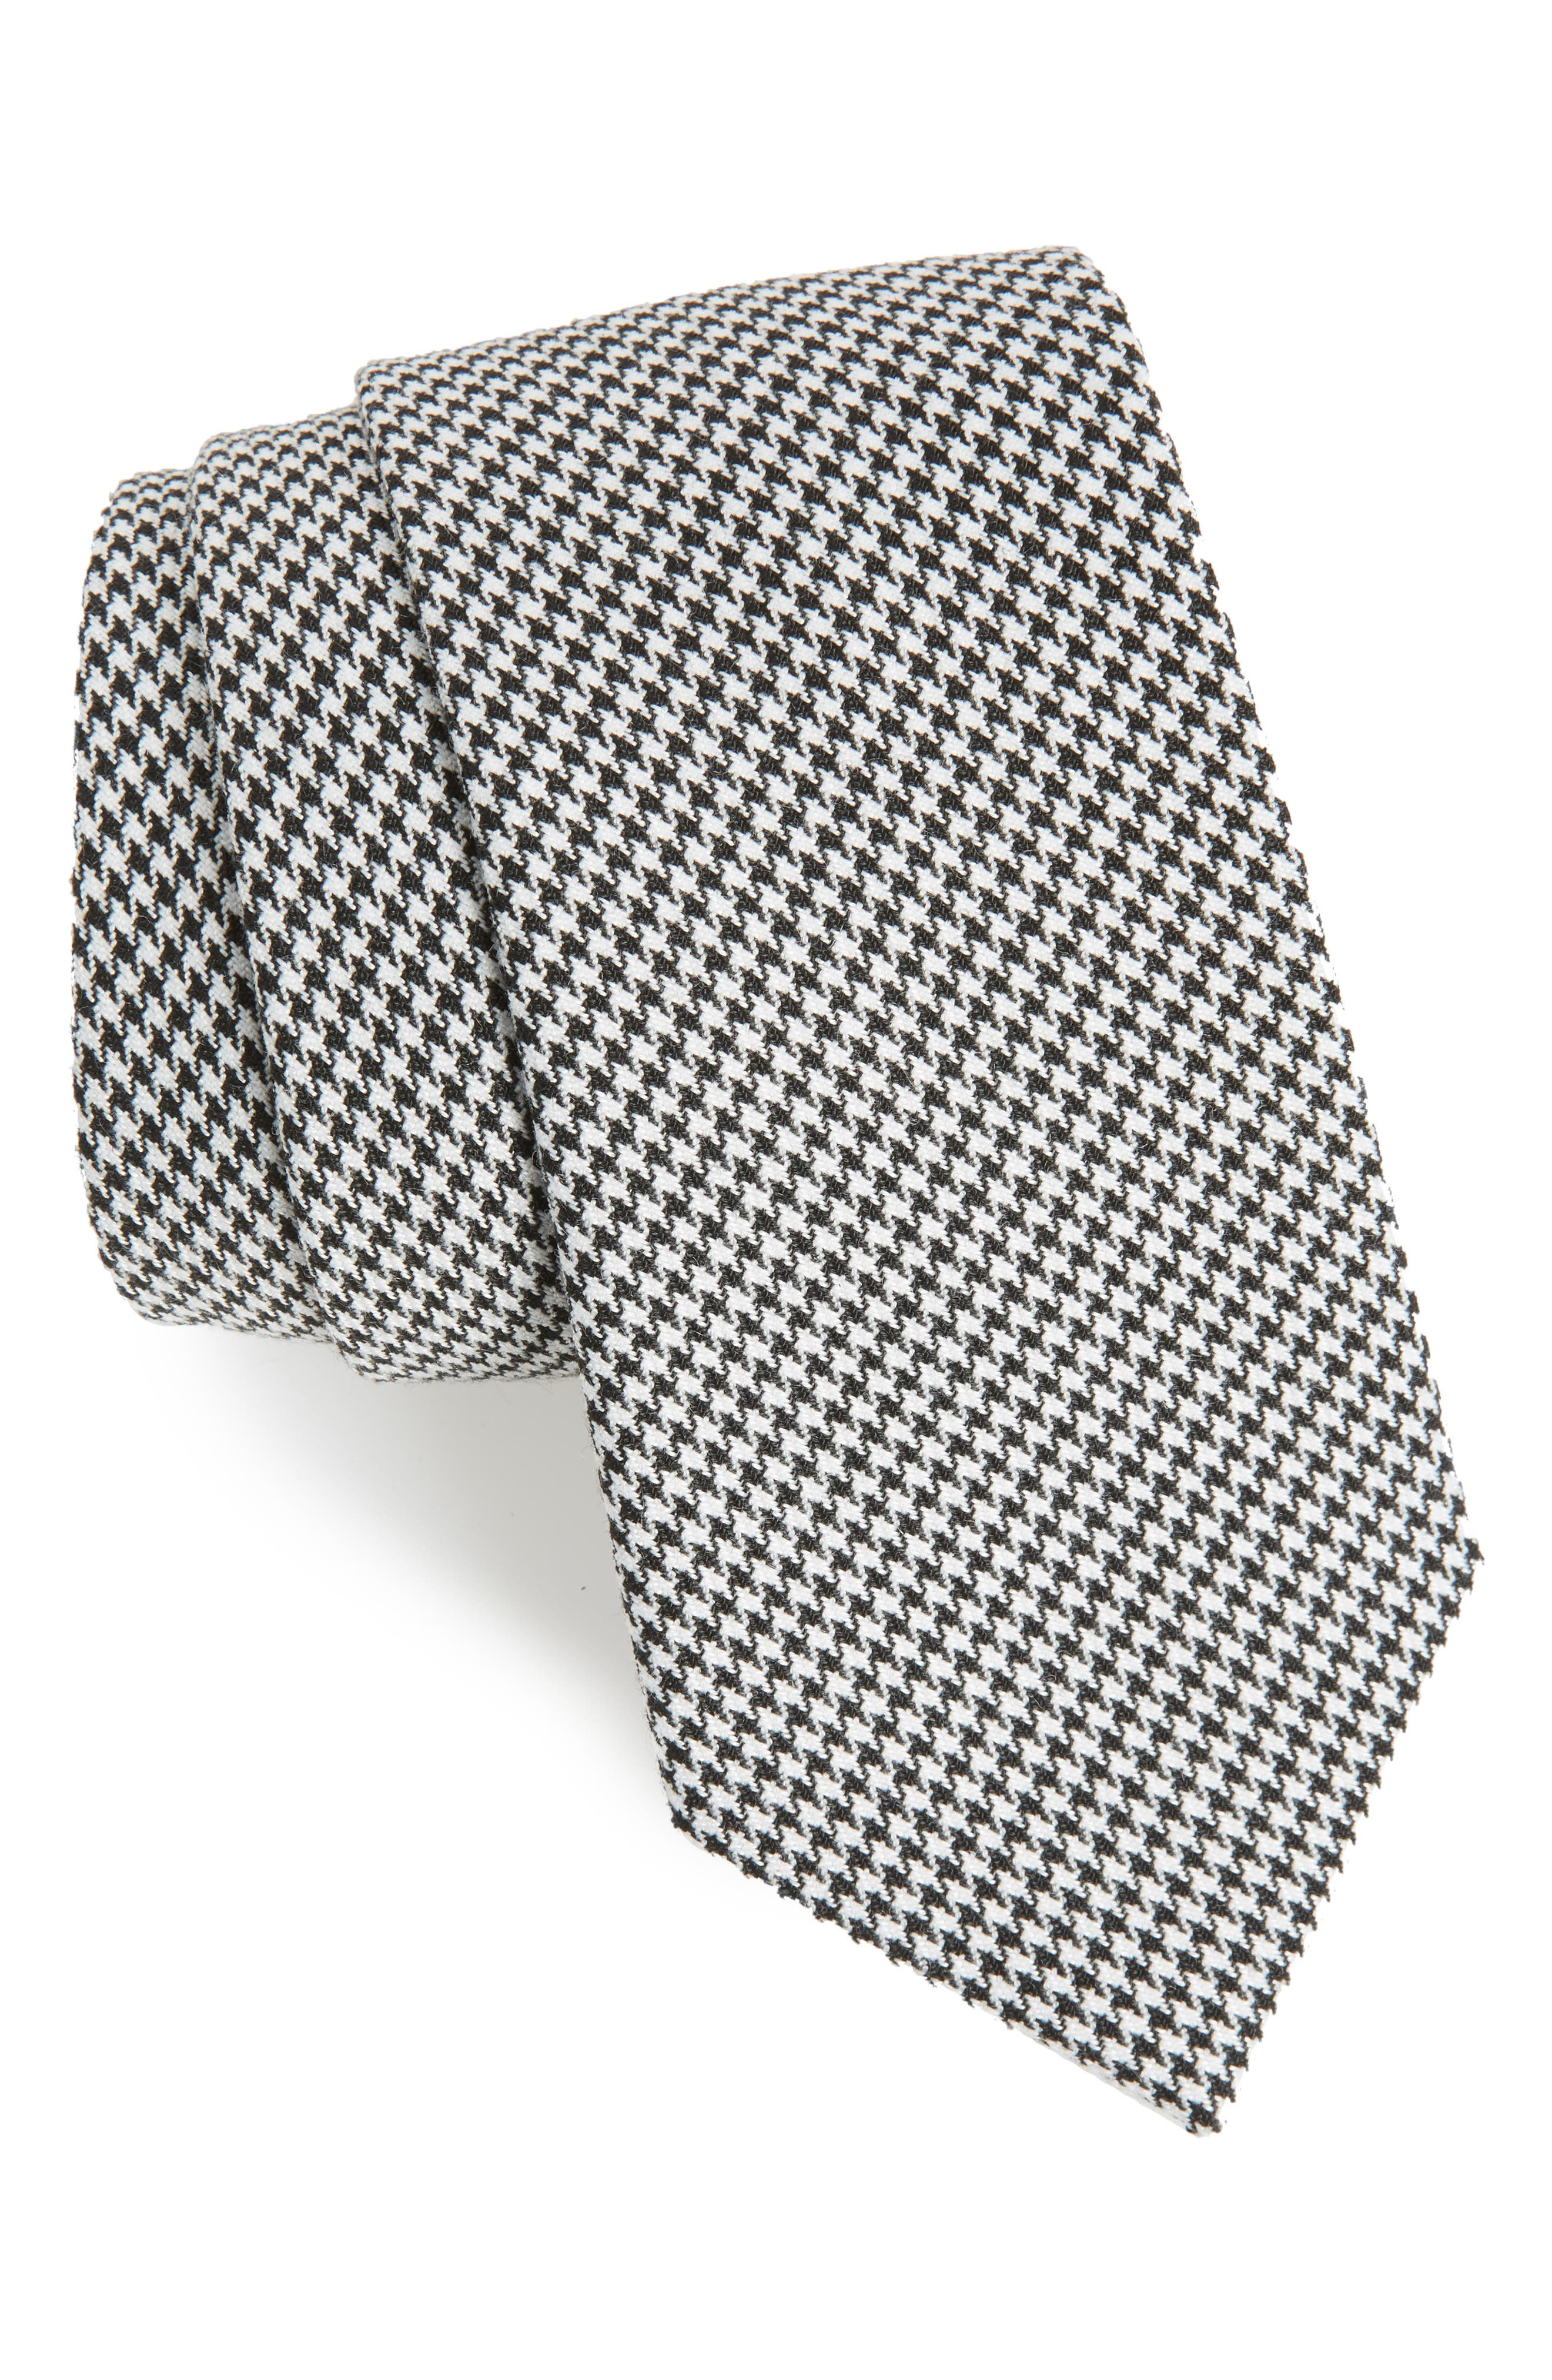 Houndstooth Woven Tie,                             Main thumbnail 1, color,                             Black